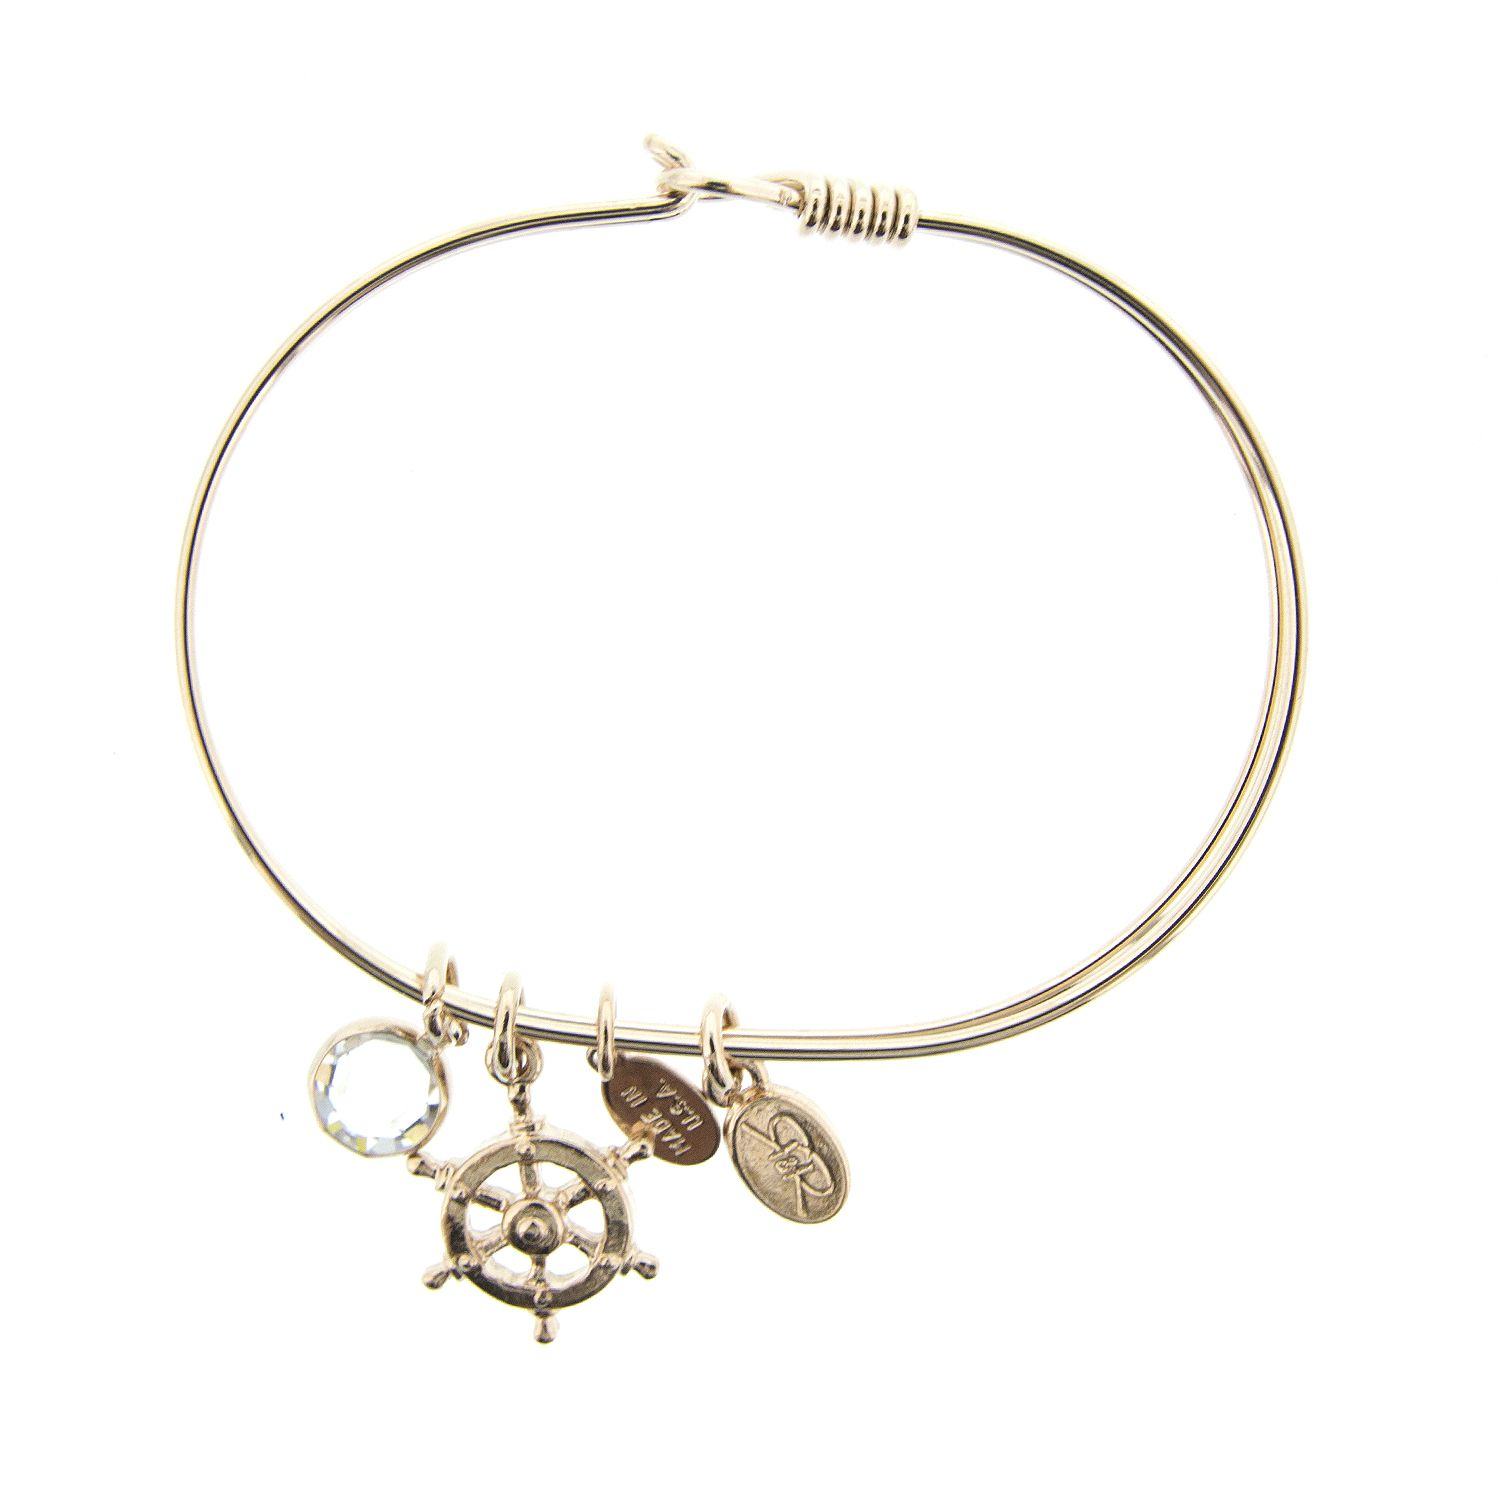 Rose gold shipus wheel nautical bracelet by reese and rose made in